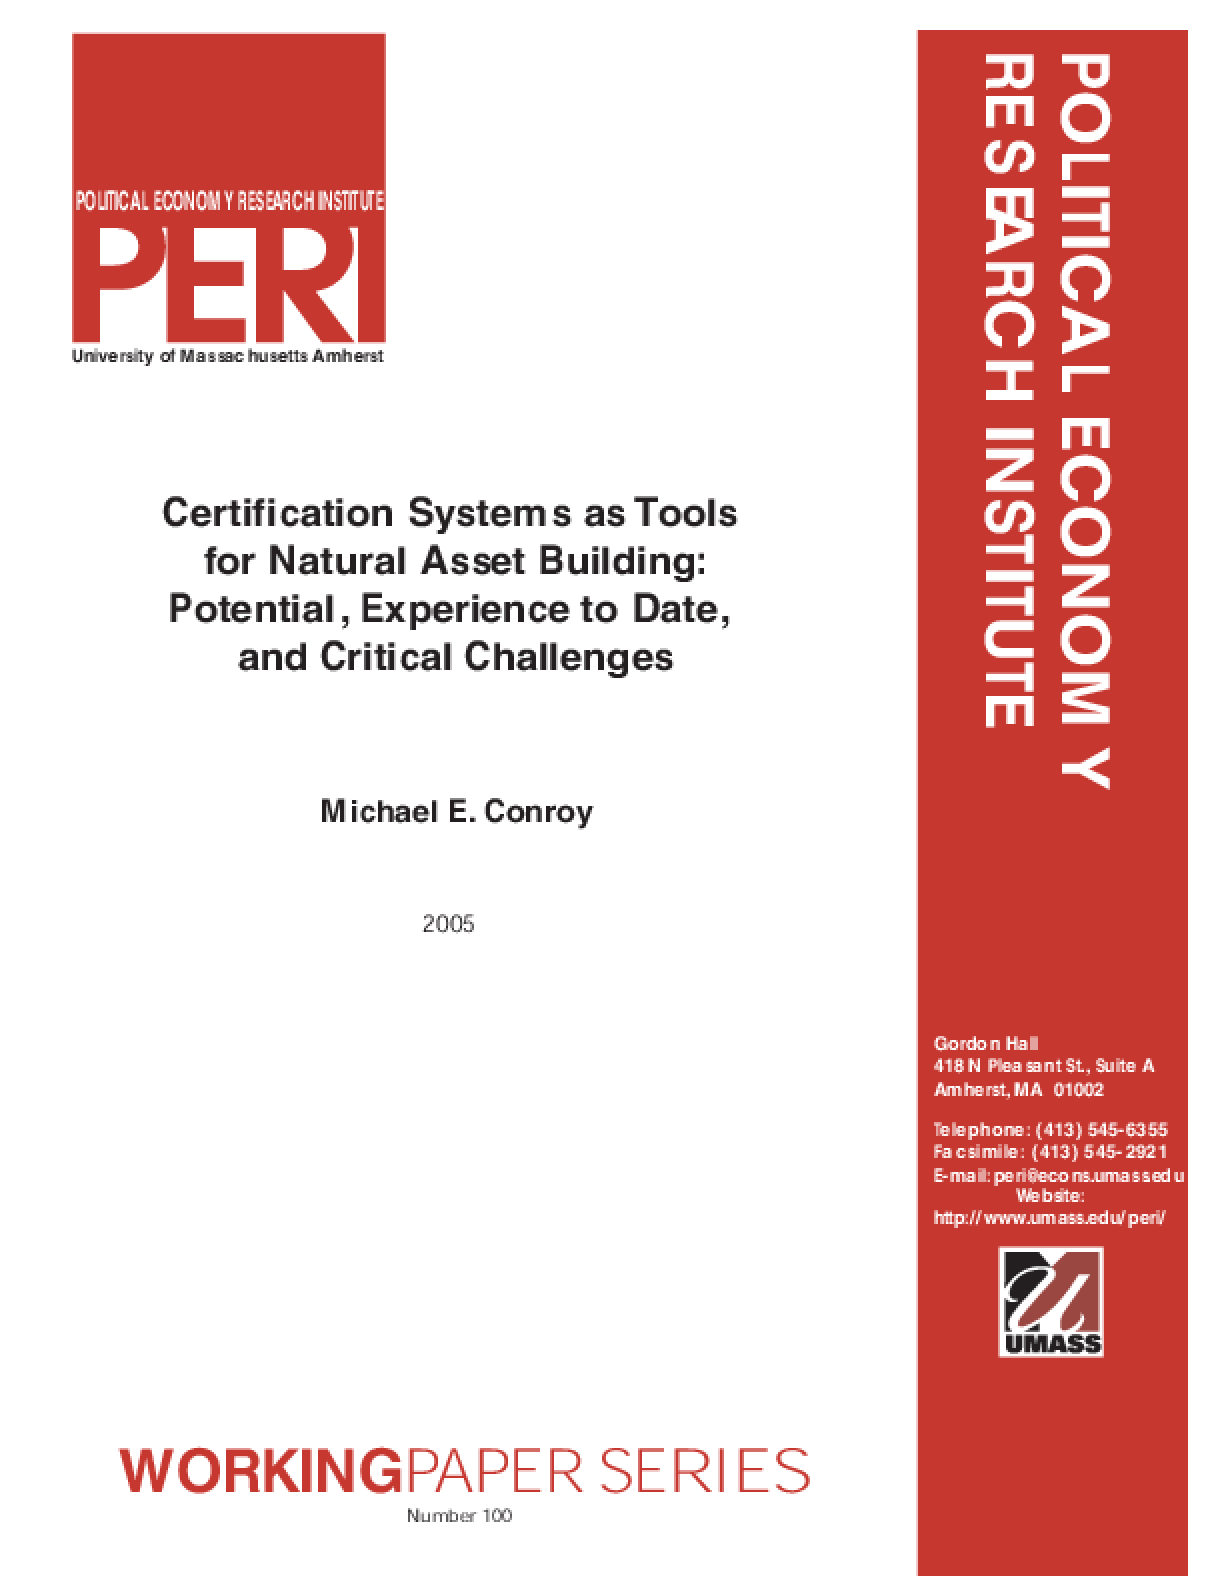 Certification Systems as Tools for Natural Asset Building: Potential, Experiences to Date, and Critical Challenges